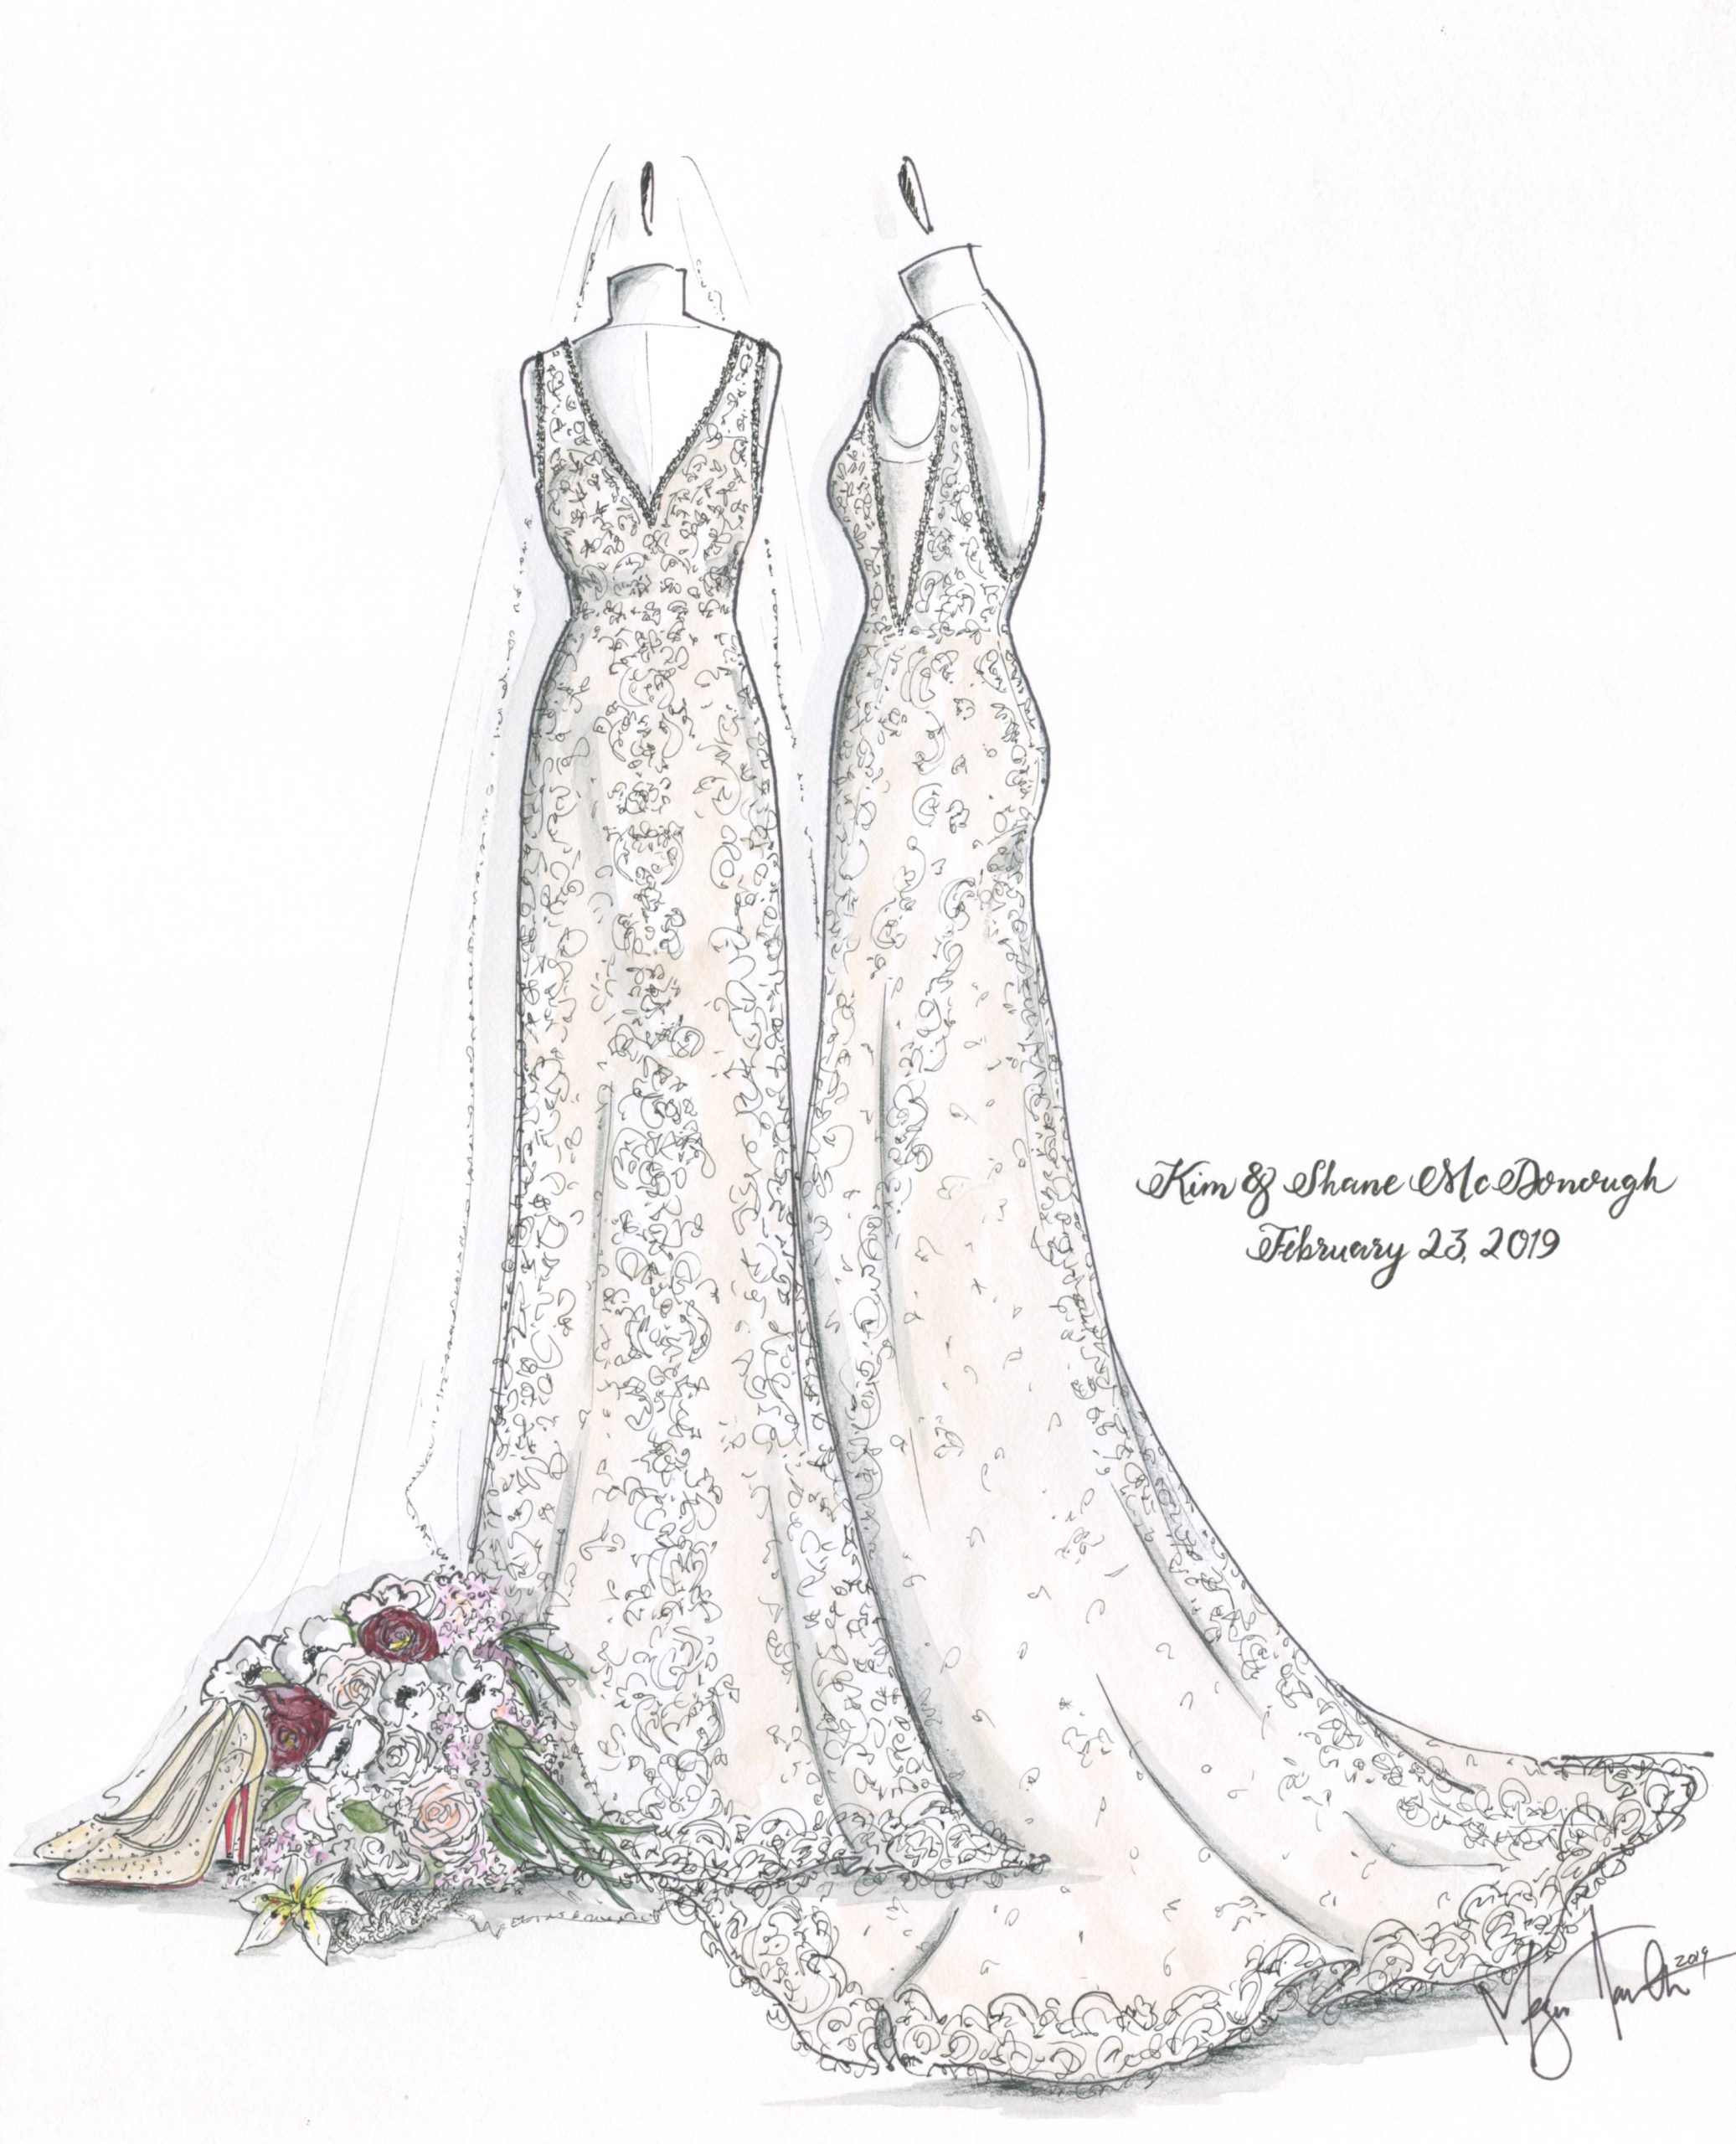 Front and side profile of a wedding dress worn by Kim McDonough on February 23, 2019. Illustrated by Megan Hamilton Weddings. Featured on Dream Weddings.